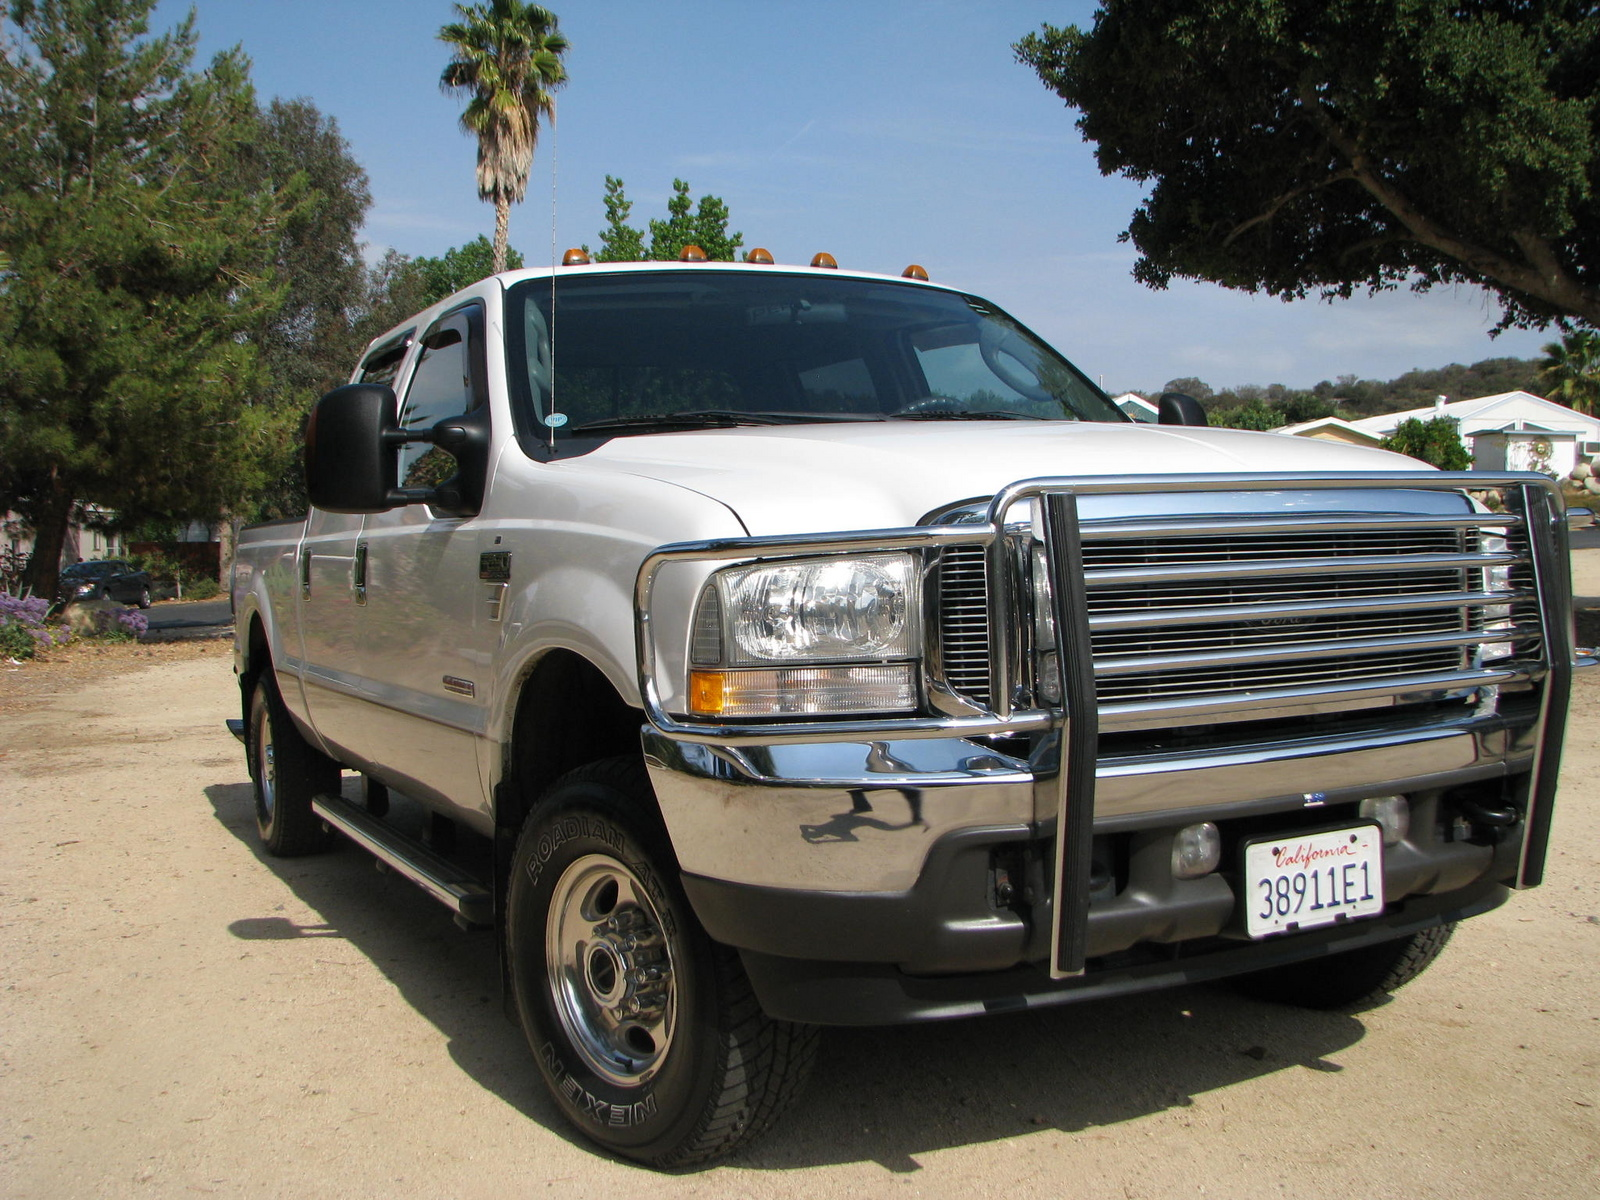 2004 Ford F-250 Super Duty - Exterior Pictures